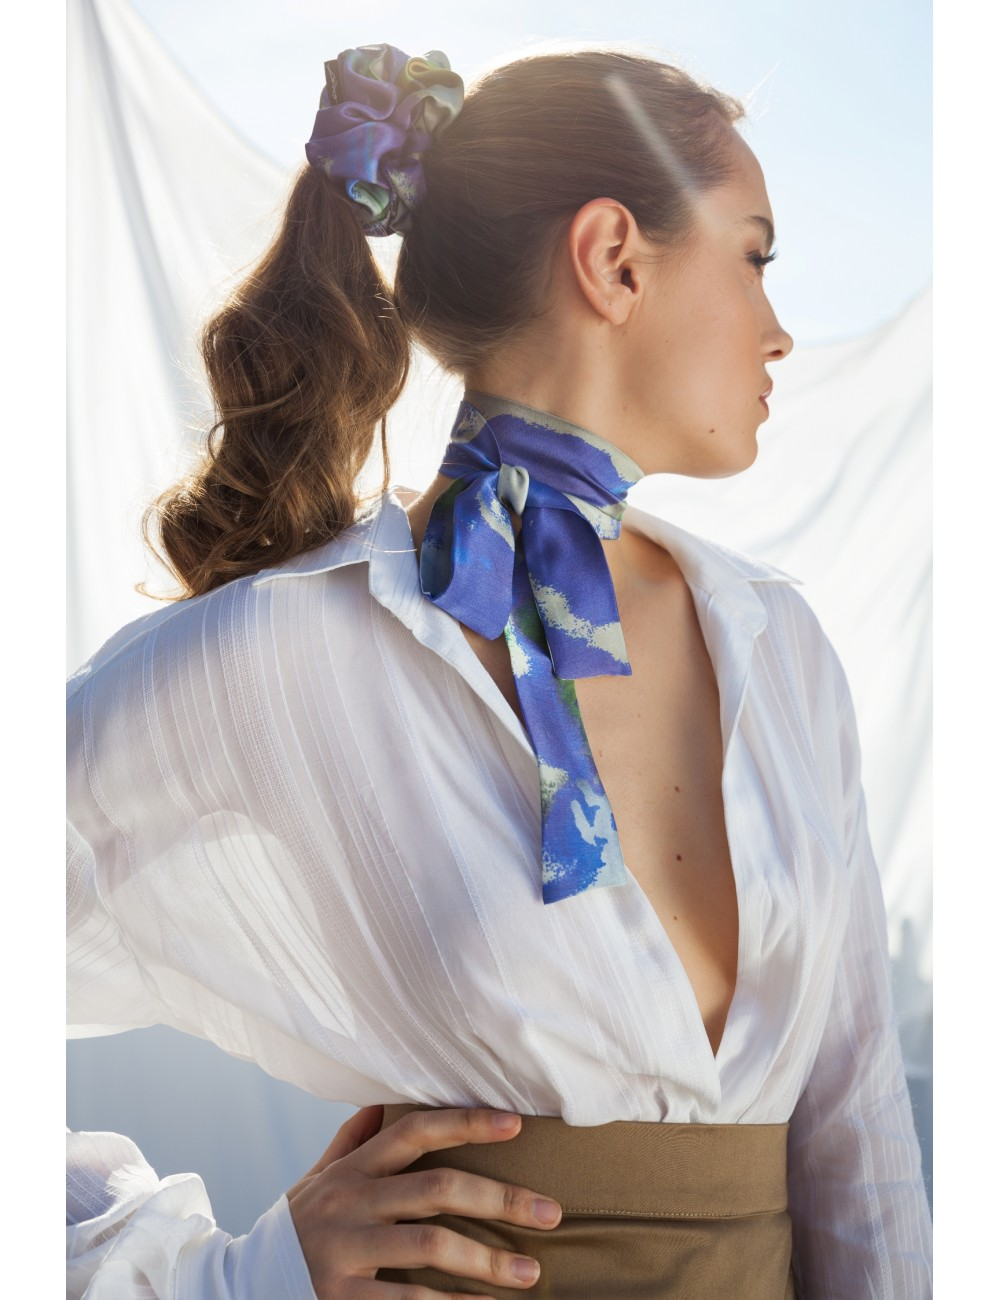 Clare Haggas Game On Silk Scrunchie - Ladies from A Hume UK